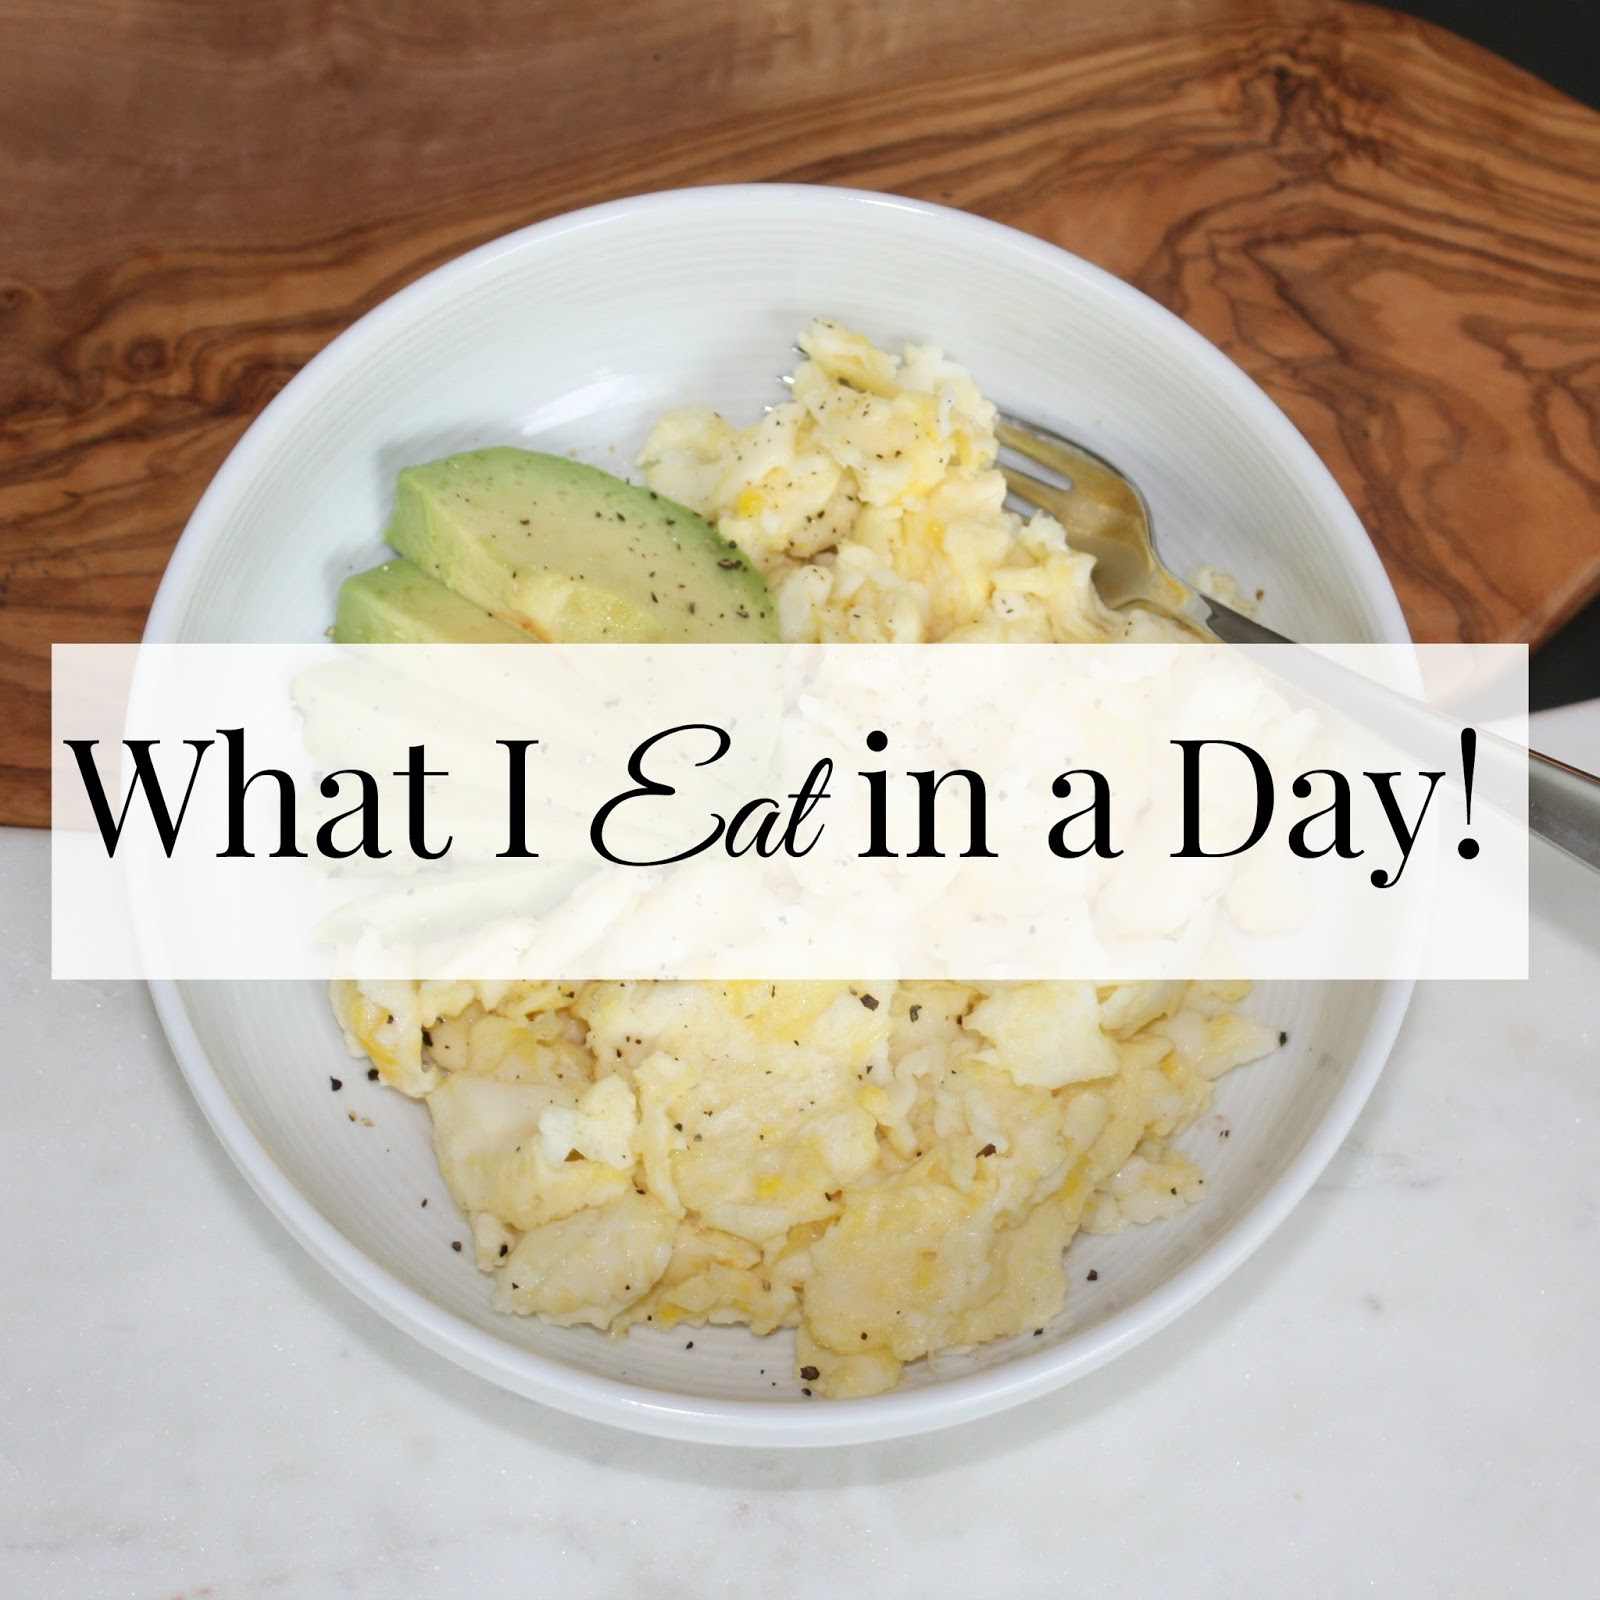 What I Eat in a Day, Healthy Meal Ideas